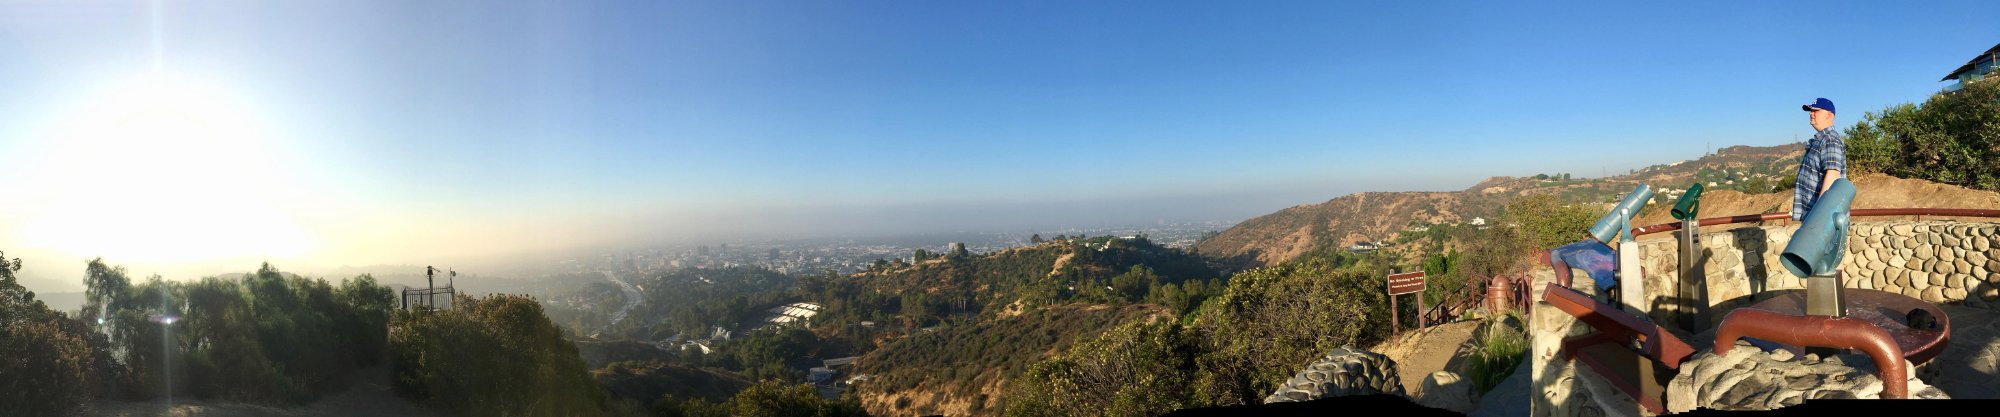 An amazing 360° view in Hollywood